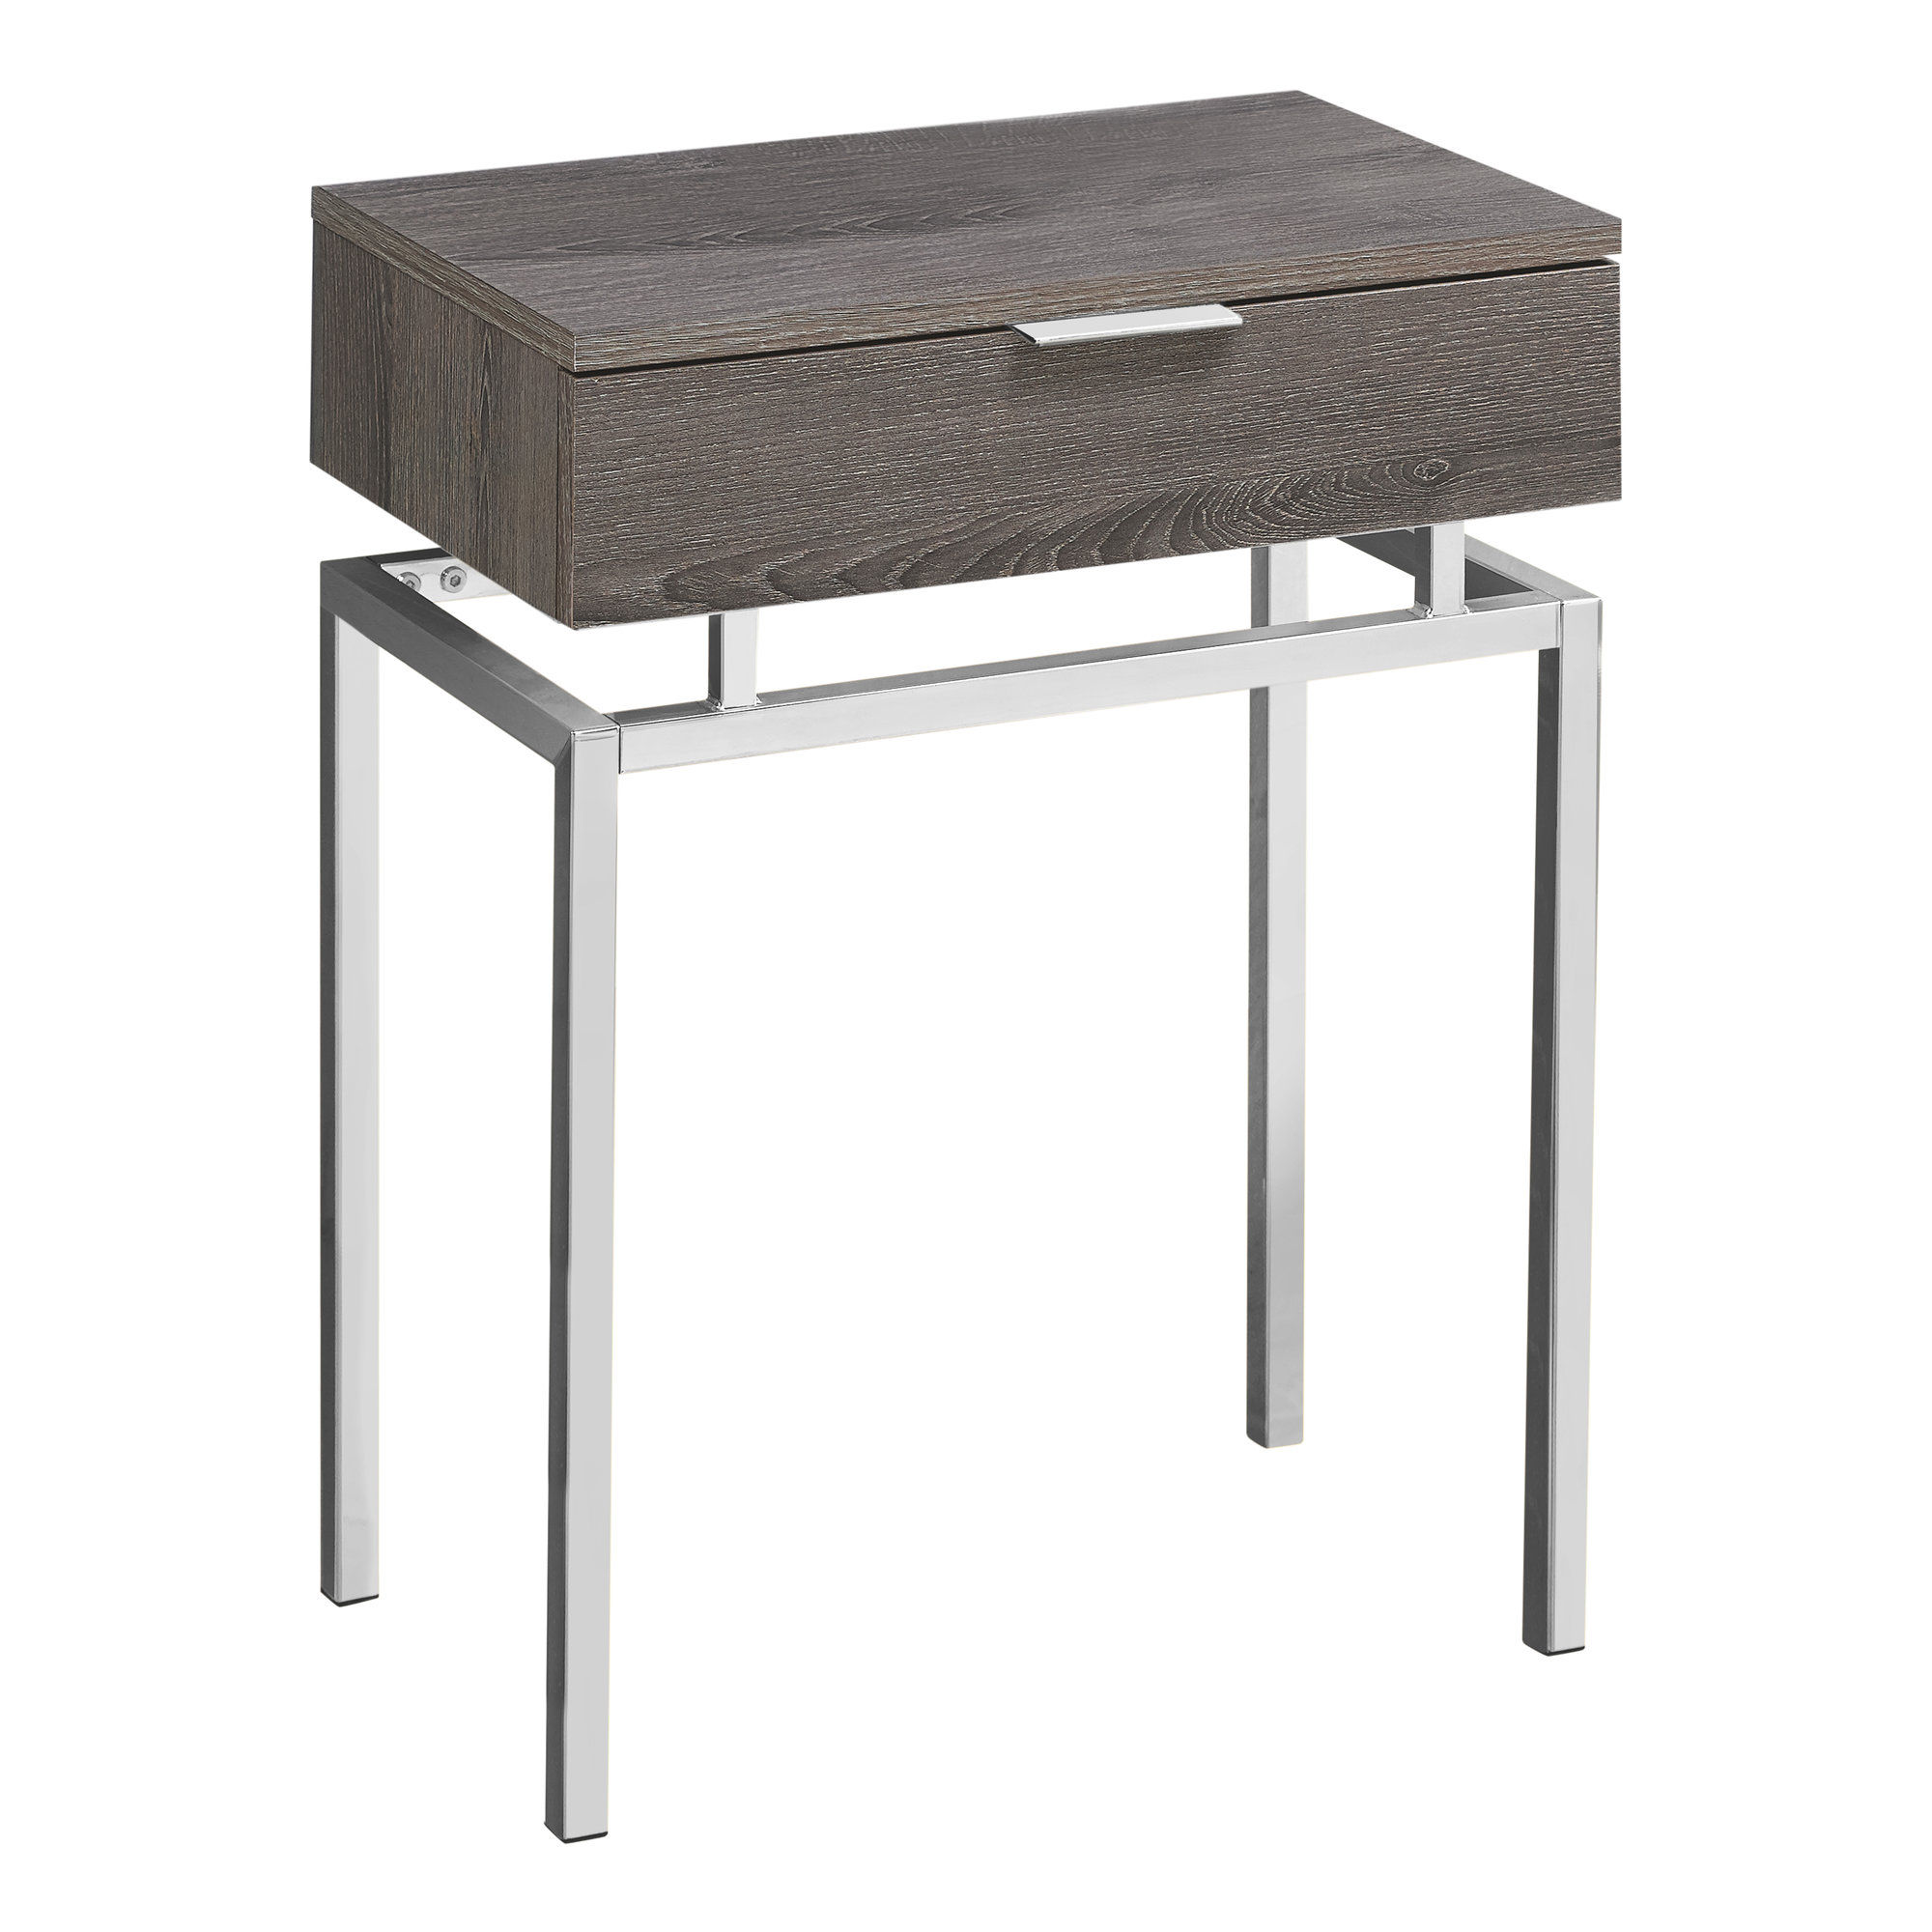 Monarch Specialties Dark Taupe Mdf 24 Inch Accent Table